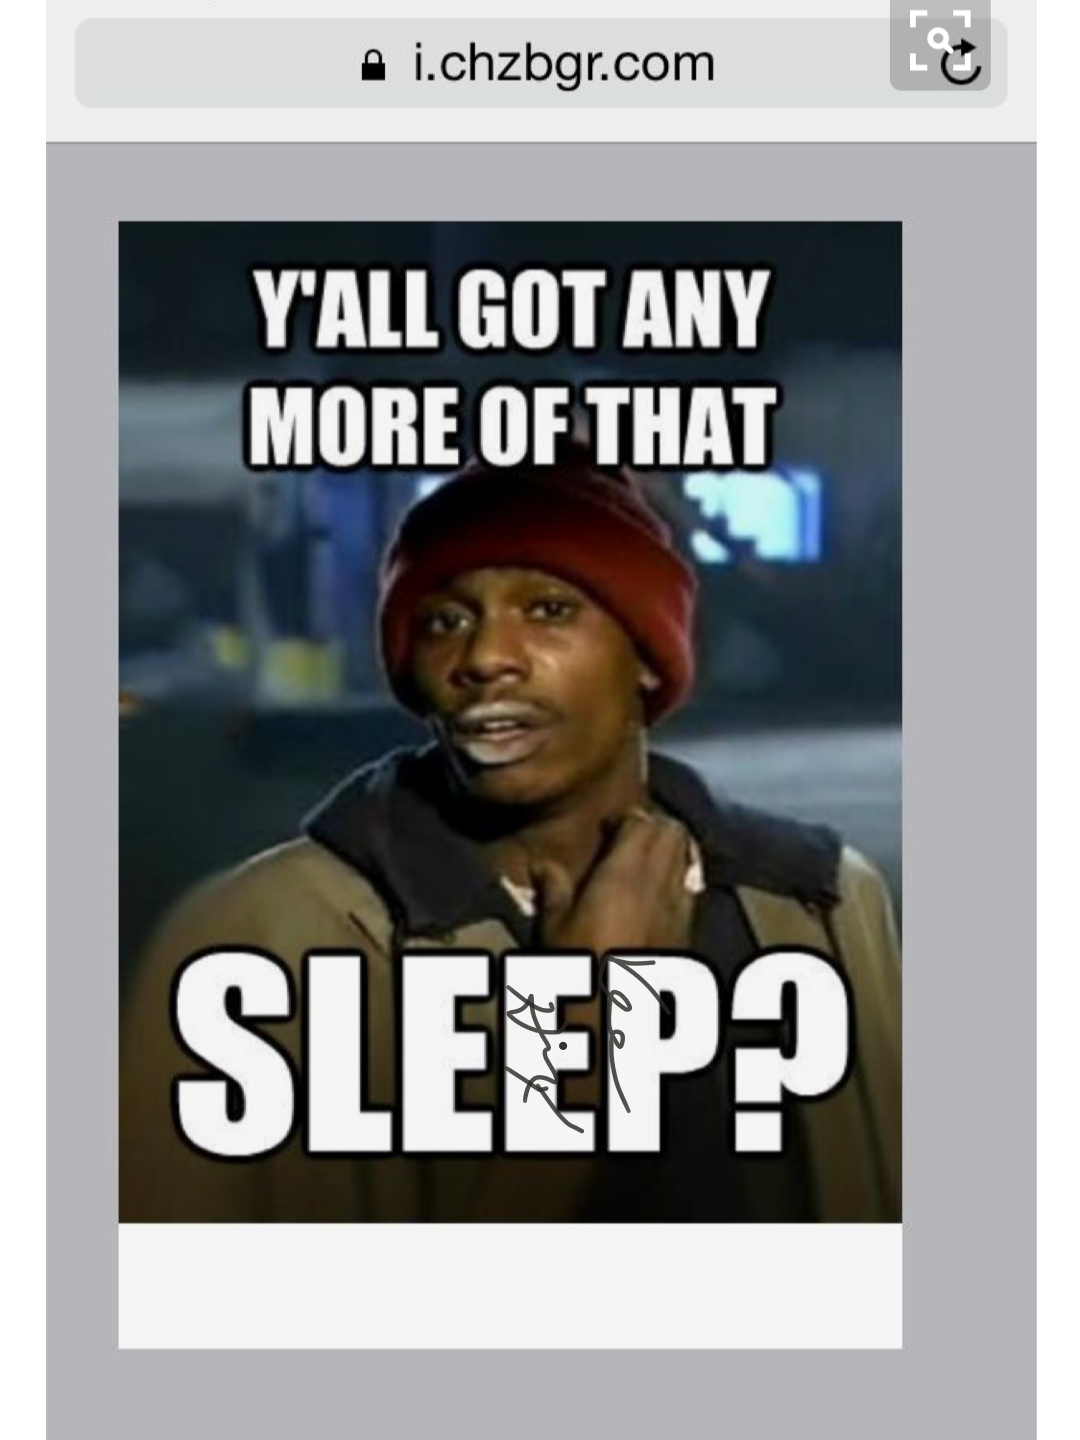 I Created This Meme To Express My Angst Of Insomnia I Love Dave Chappelles Comedic Genius